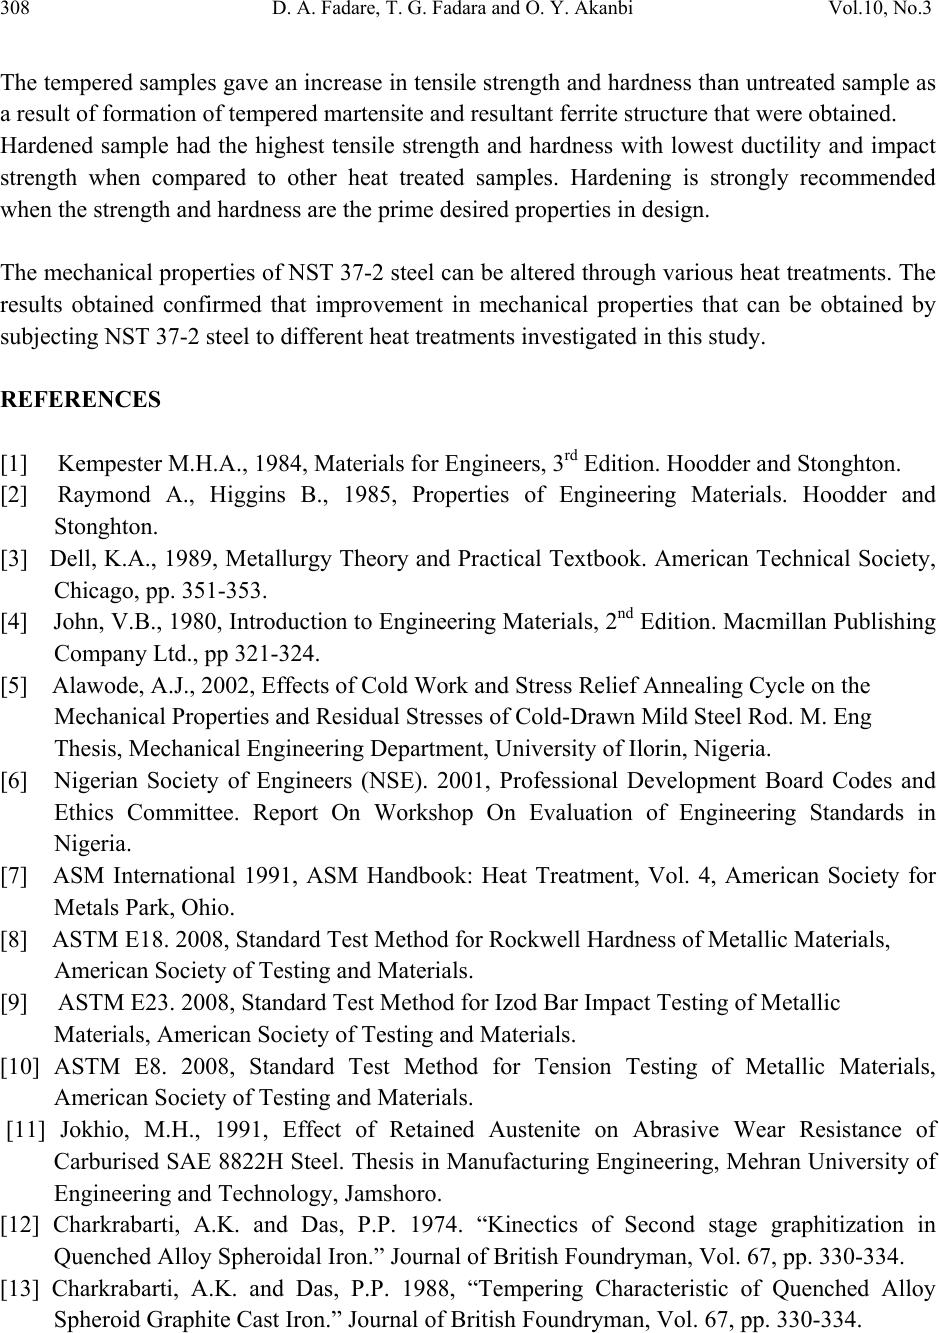 network administrator cover letters